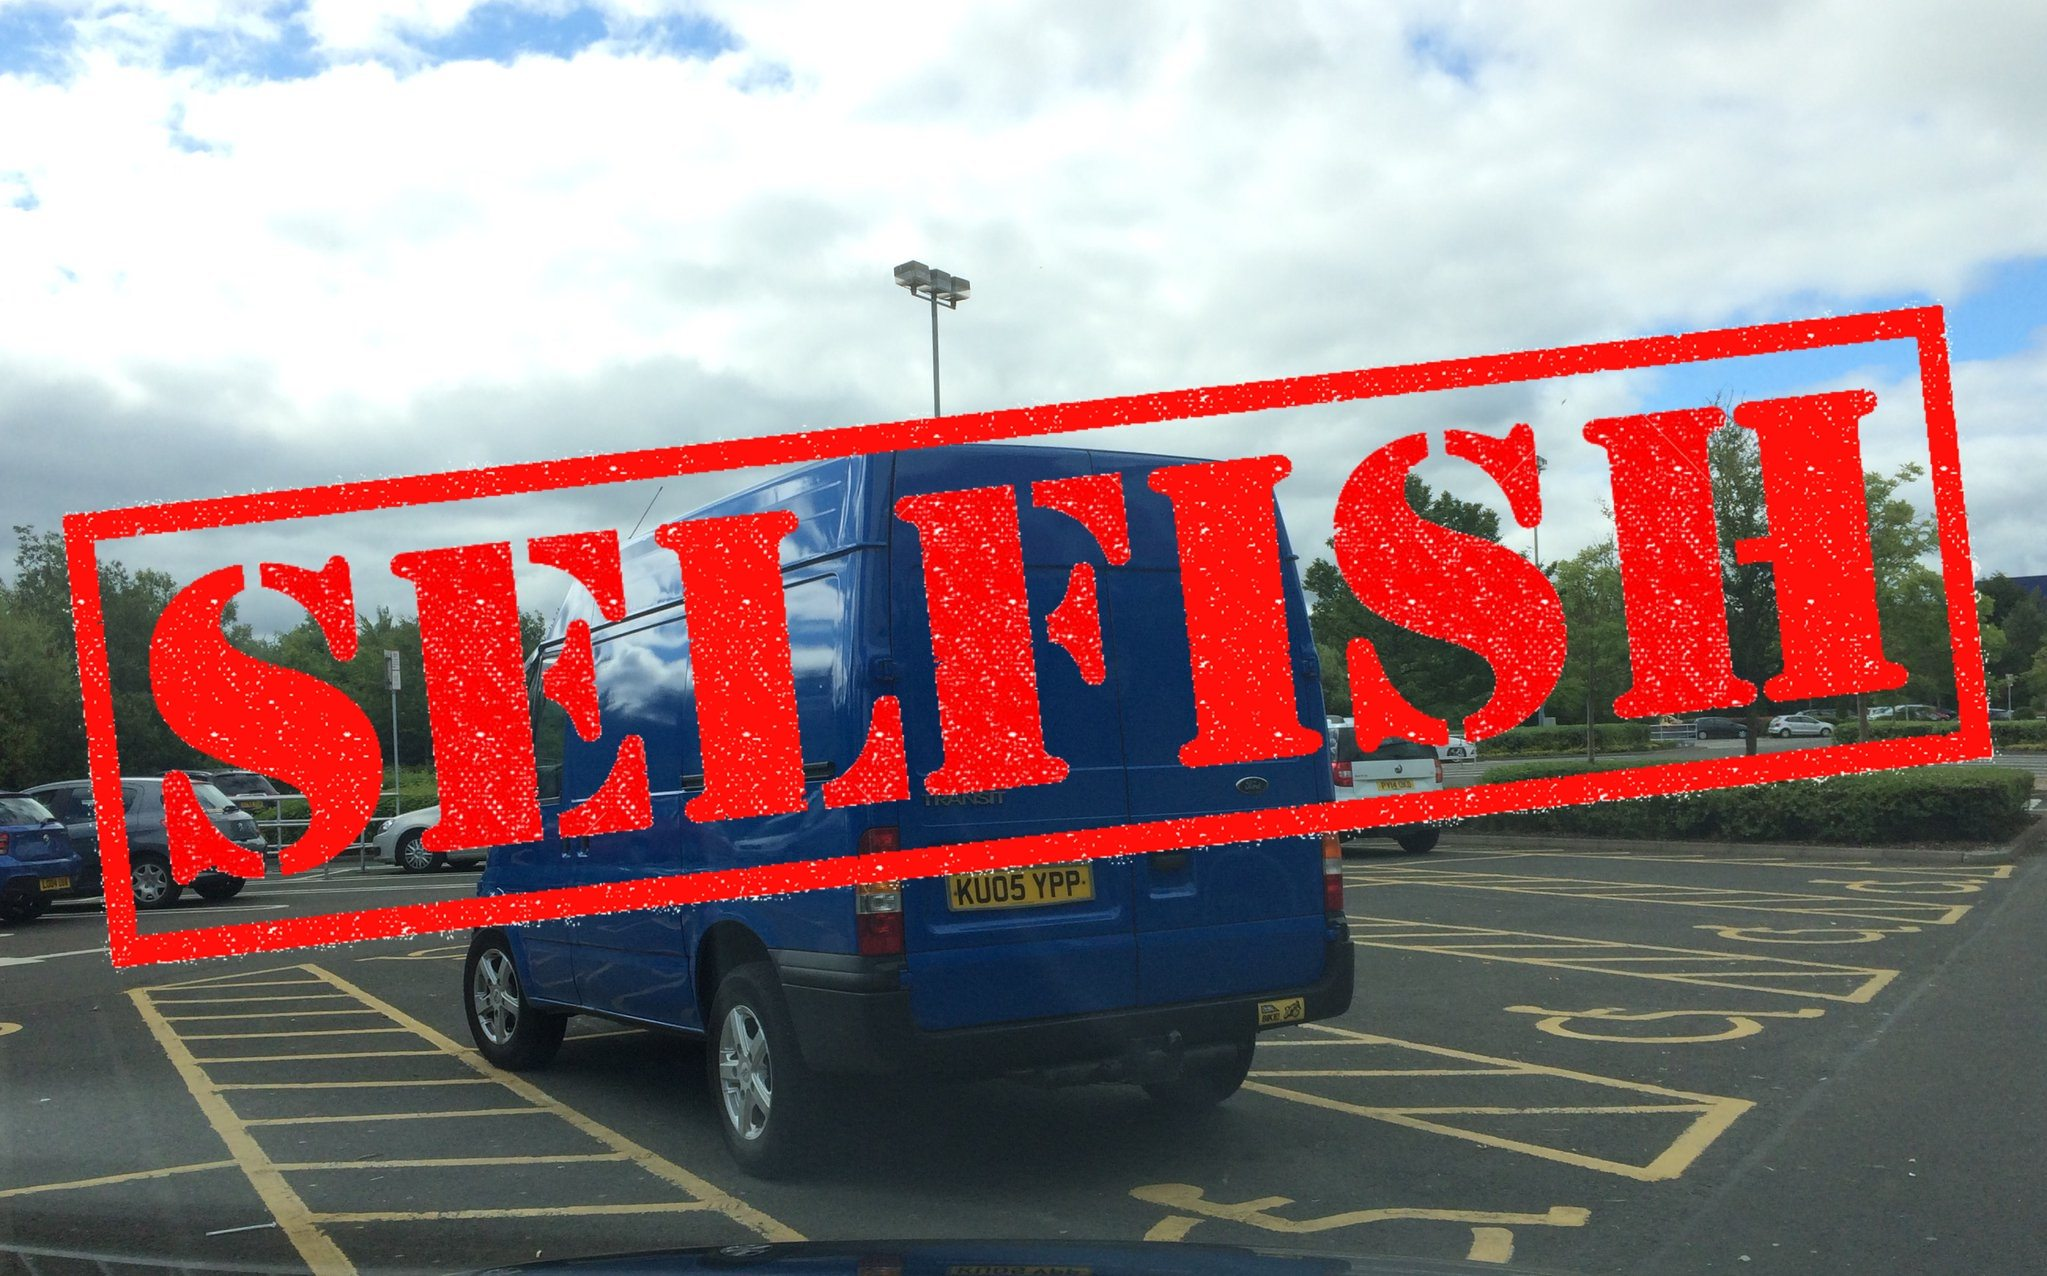 Selfish Parker Of The Month KU05 YPP